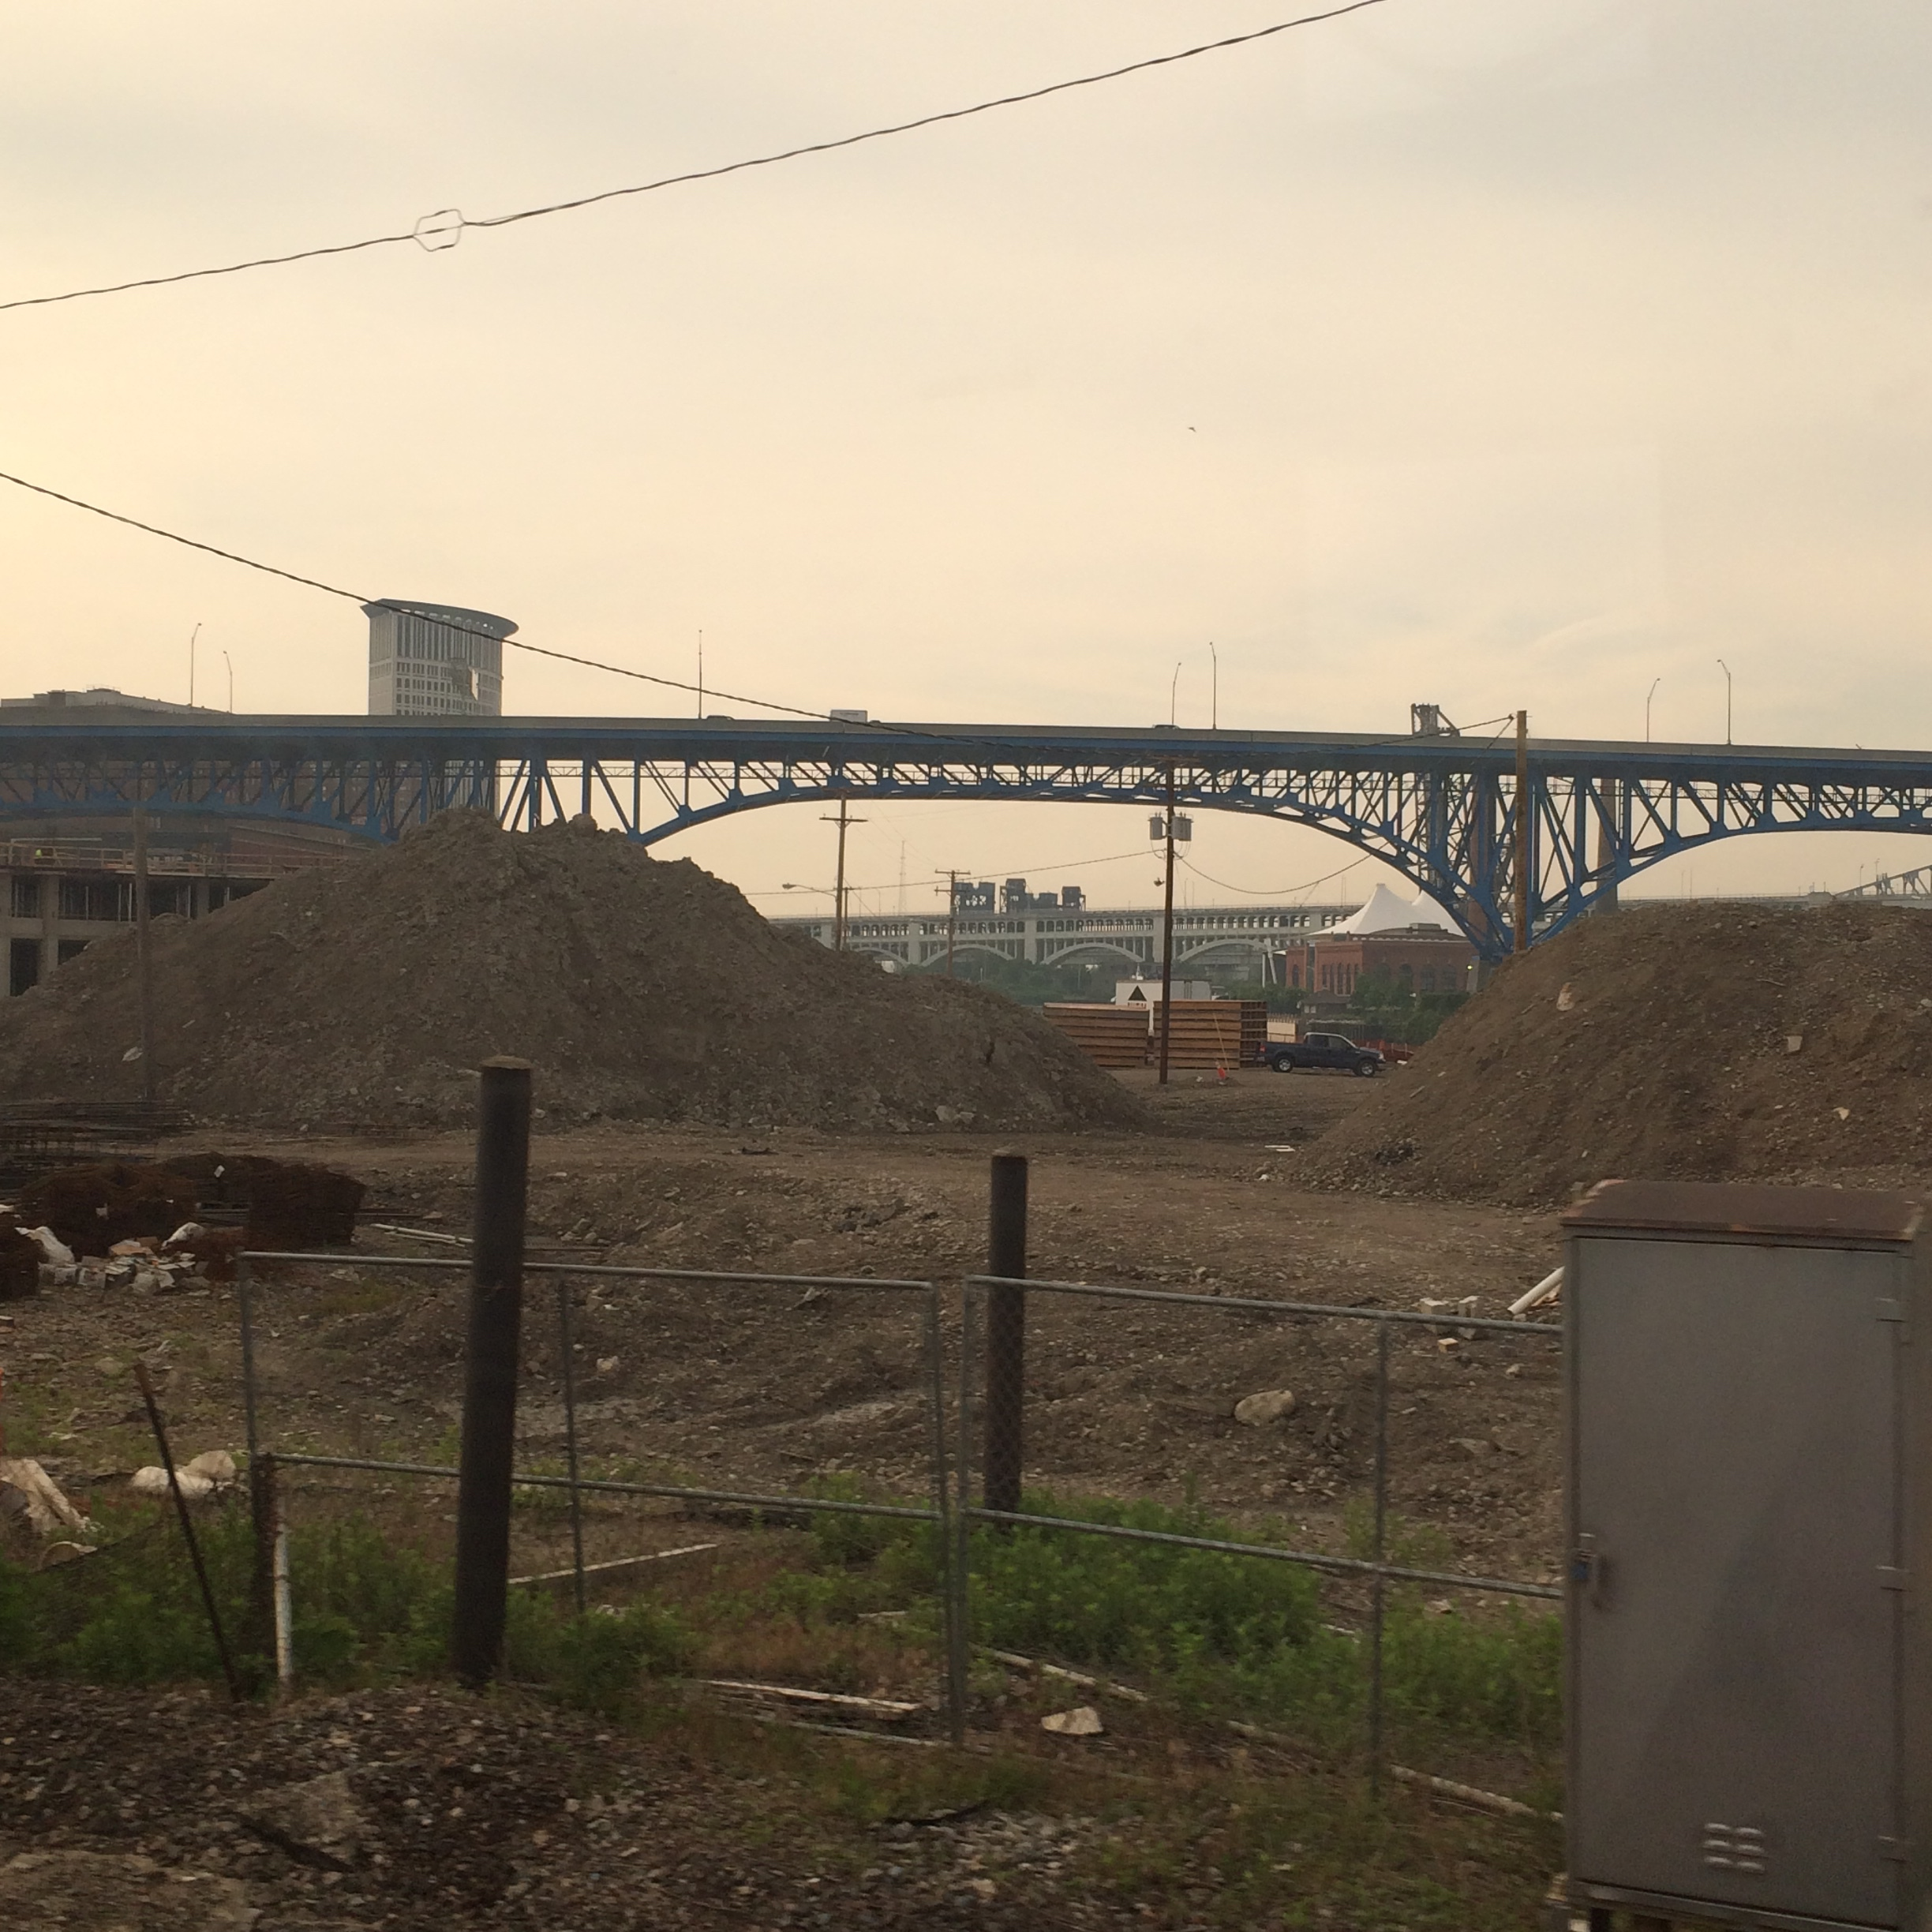 Even the outskirts of Cleveland, OH have areas that are being torn down because they are falling apart.